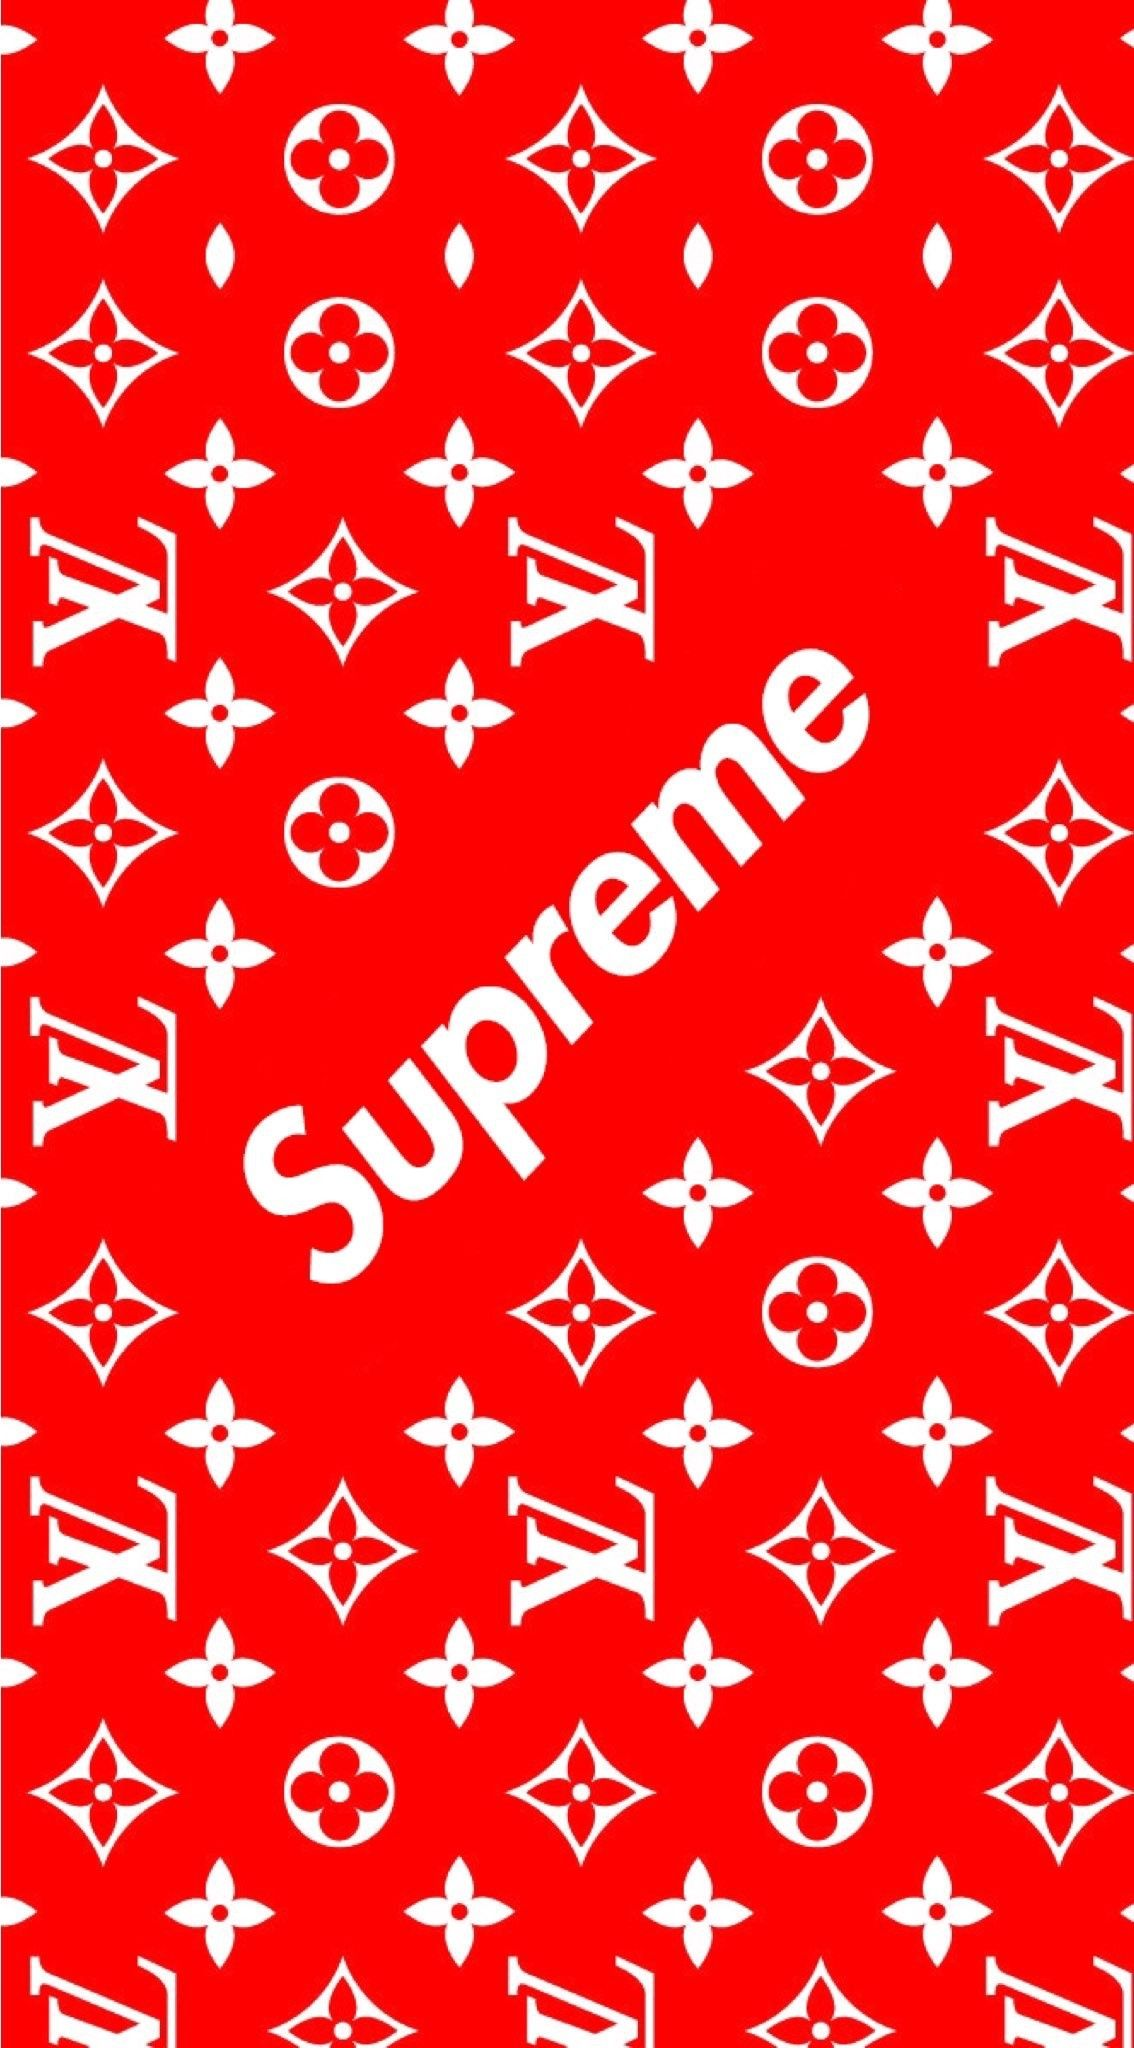 Hypebeast wallpapers top free hypebeast backgrounds - Hd supreme iphone wallpaper ...